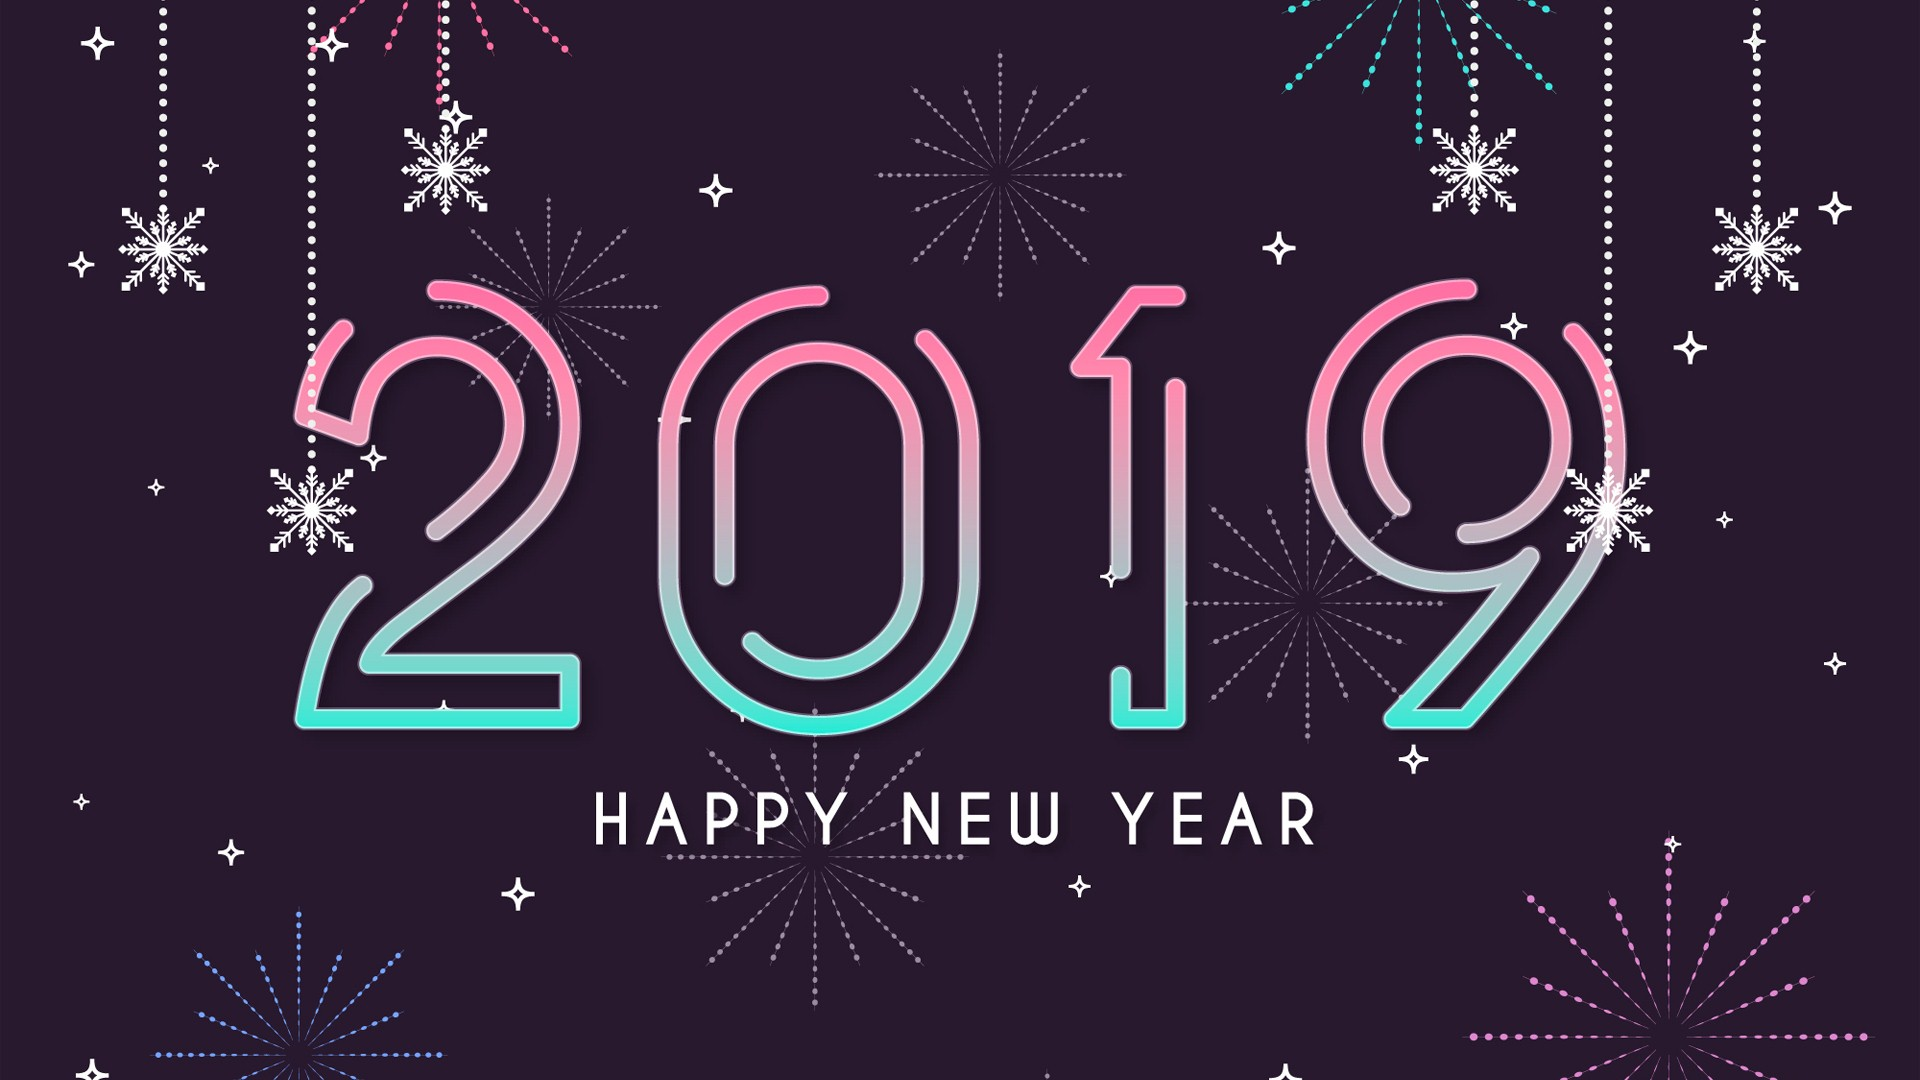 2019 Happy new Year HD Wallpaper